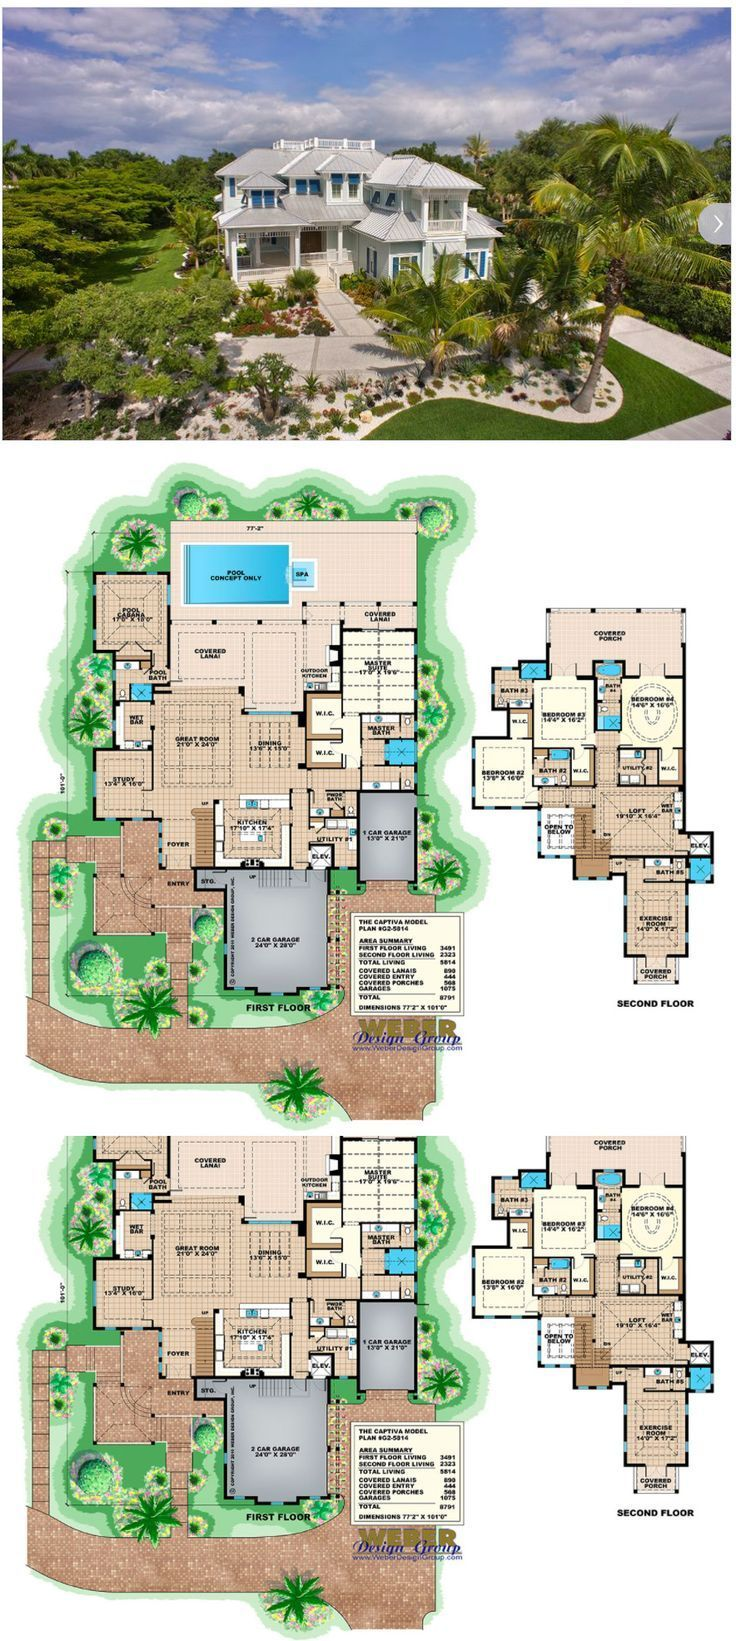 Beach House Plan 2 Story Coastal Home Floor Plan With Cabana House Plans Mansion Waterfront Homes Beach House Plan